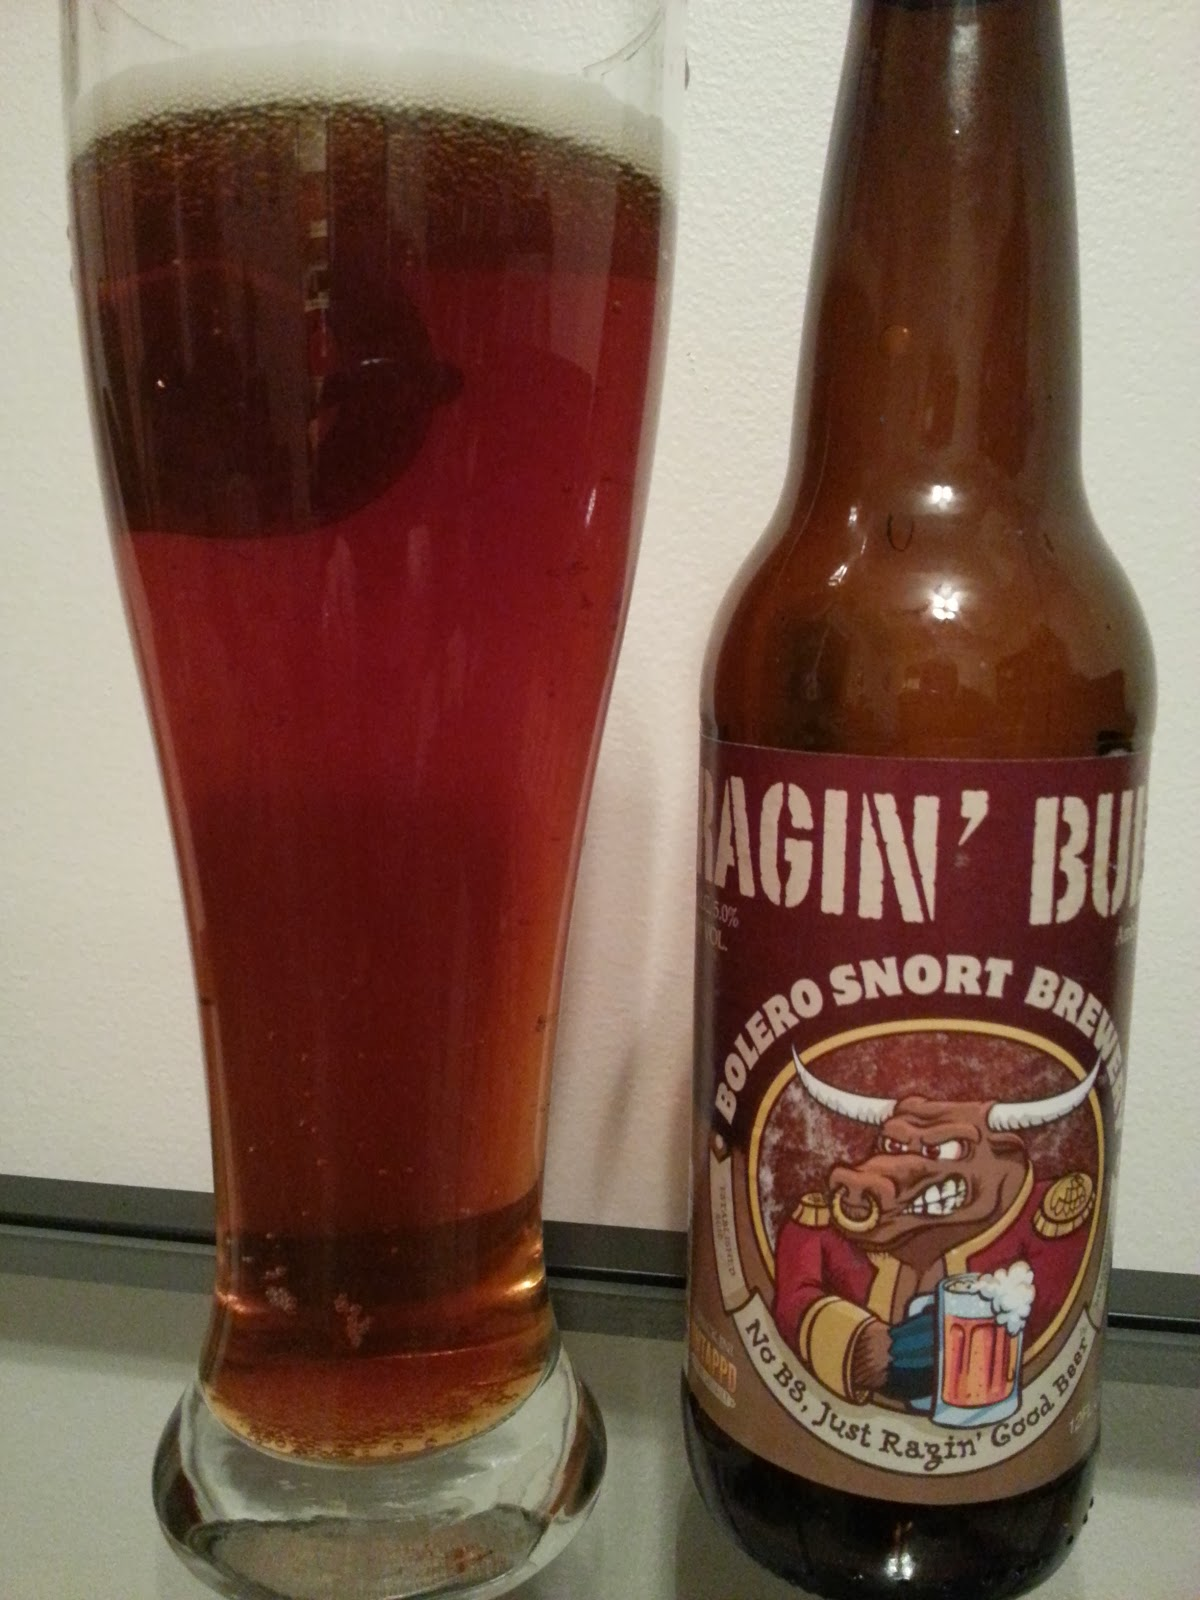 Bolero Snort Brewery, Ragin' Bull, Amber Lager, New Jersey Craft Beer